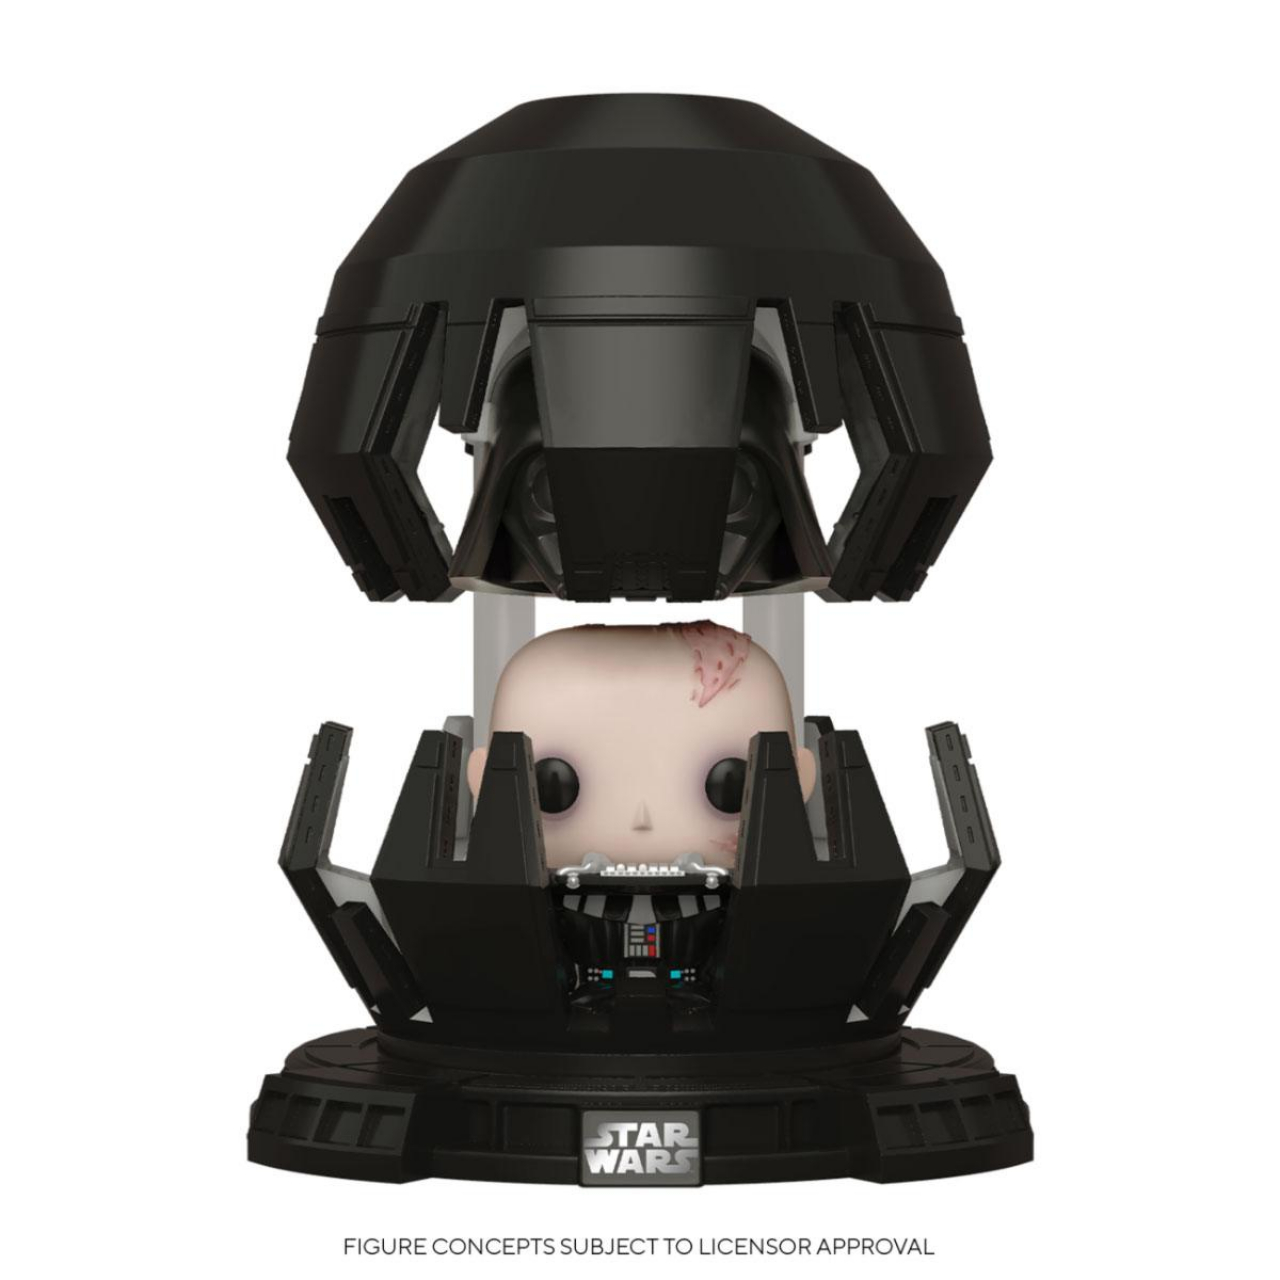 Star Wars POP! Deluxe Movies Vinyl Figure Darth Vader in Meditation Chamber 9 cm